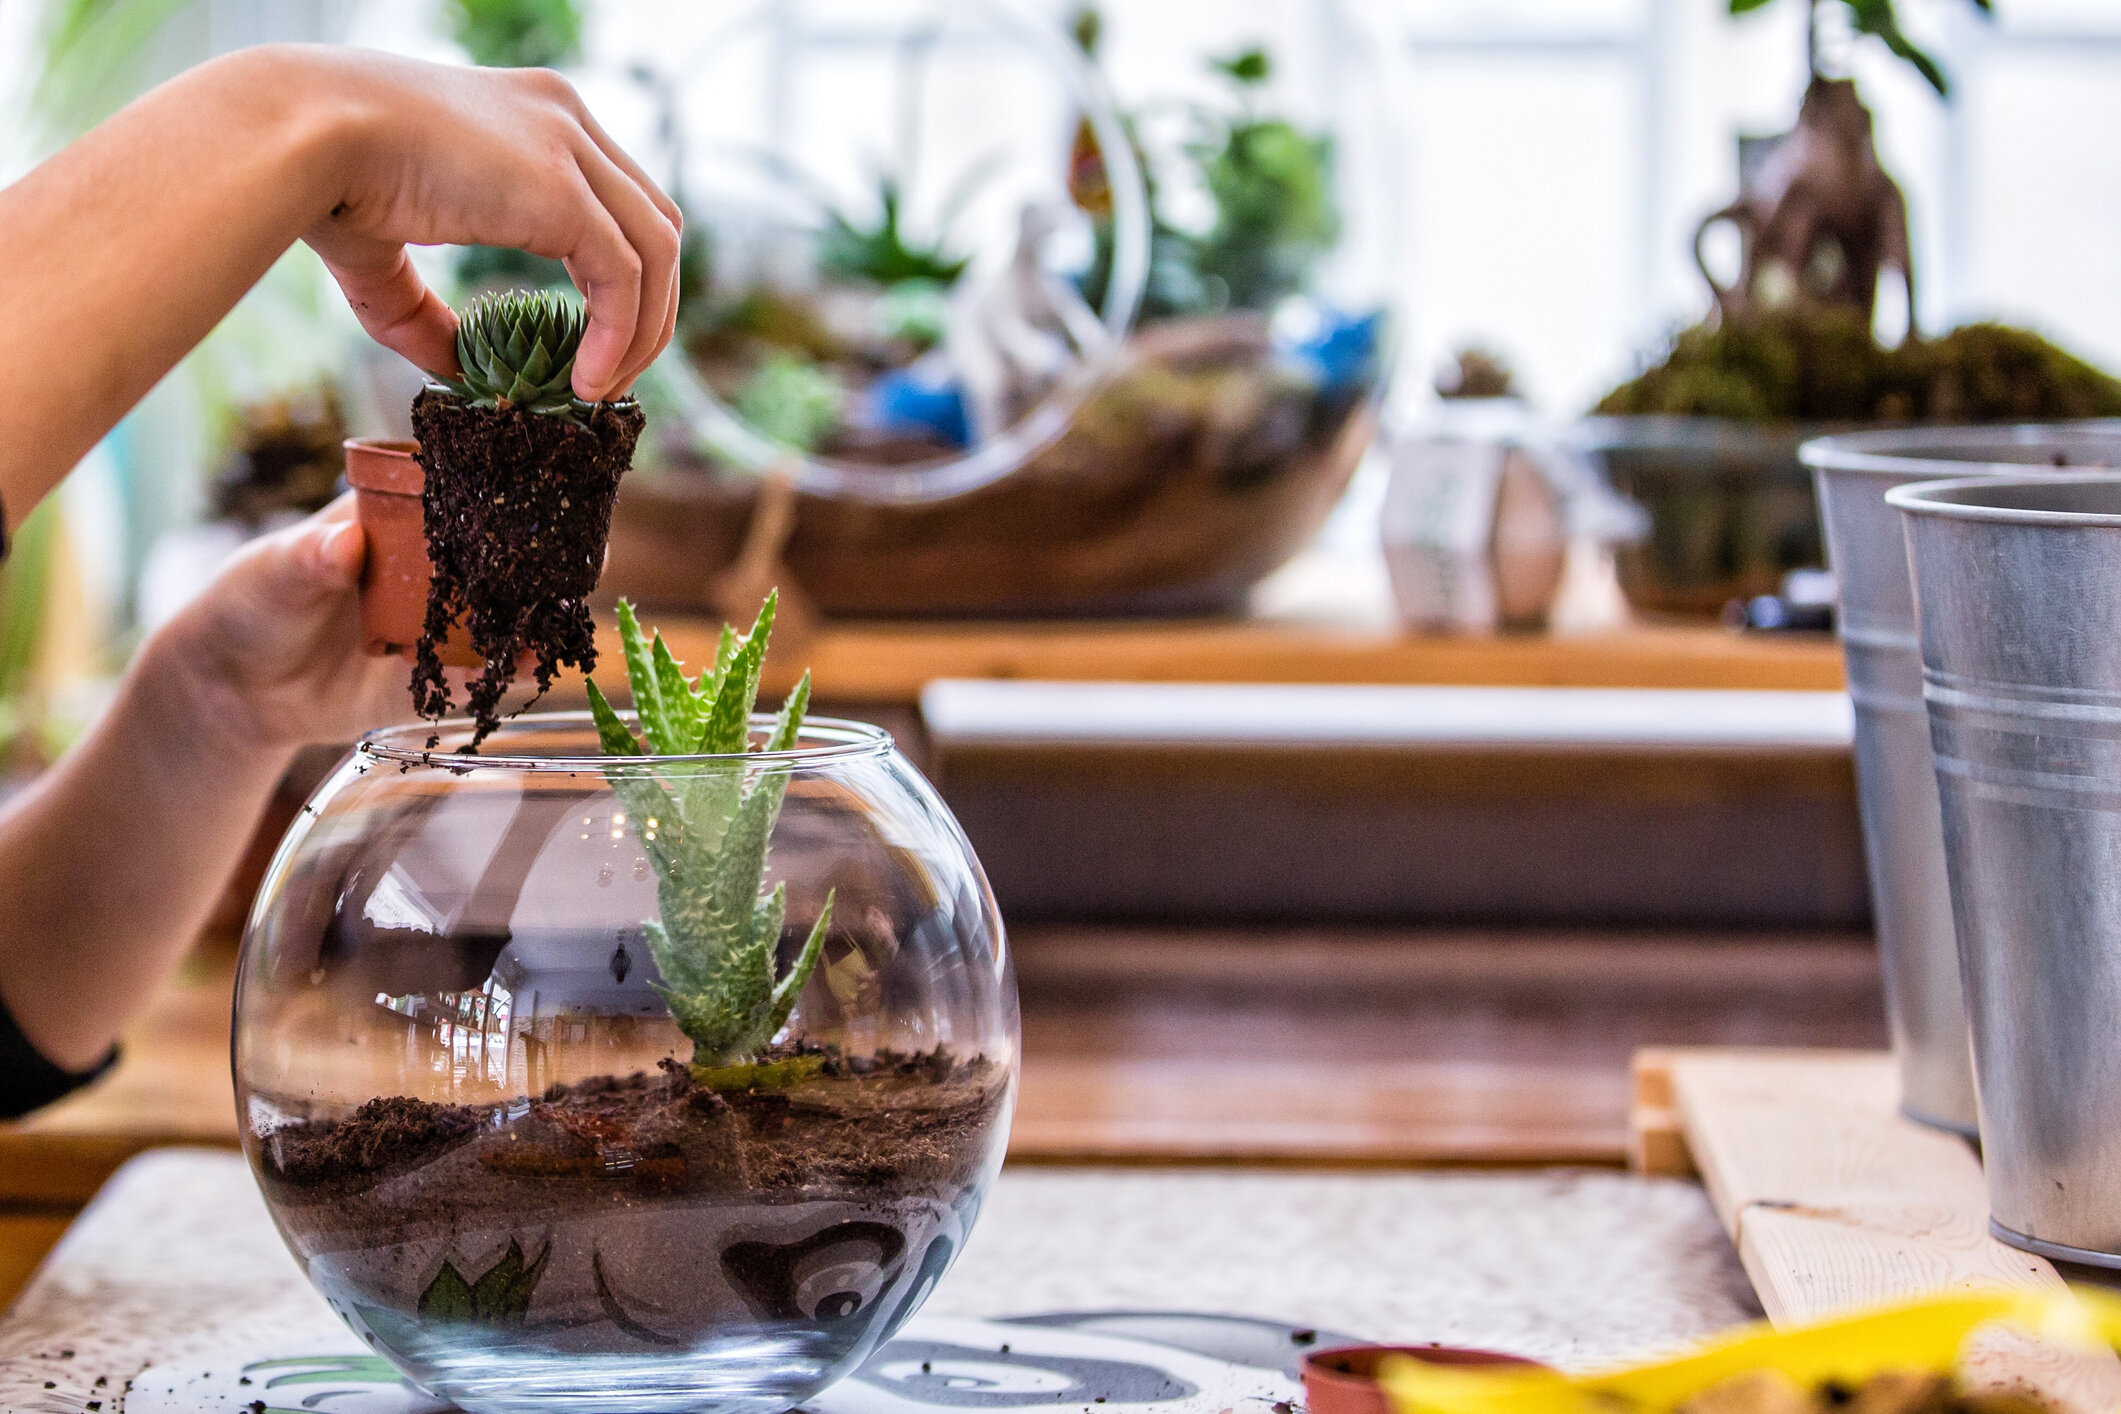 Open air terrariums are best for succulents and one of the easiest (and fun) terrariums to make.